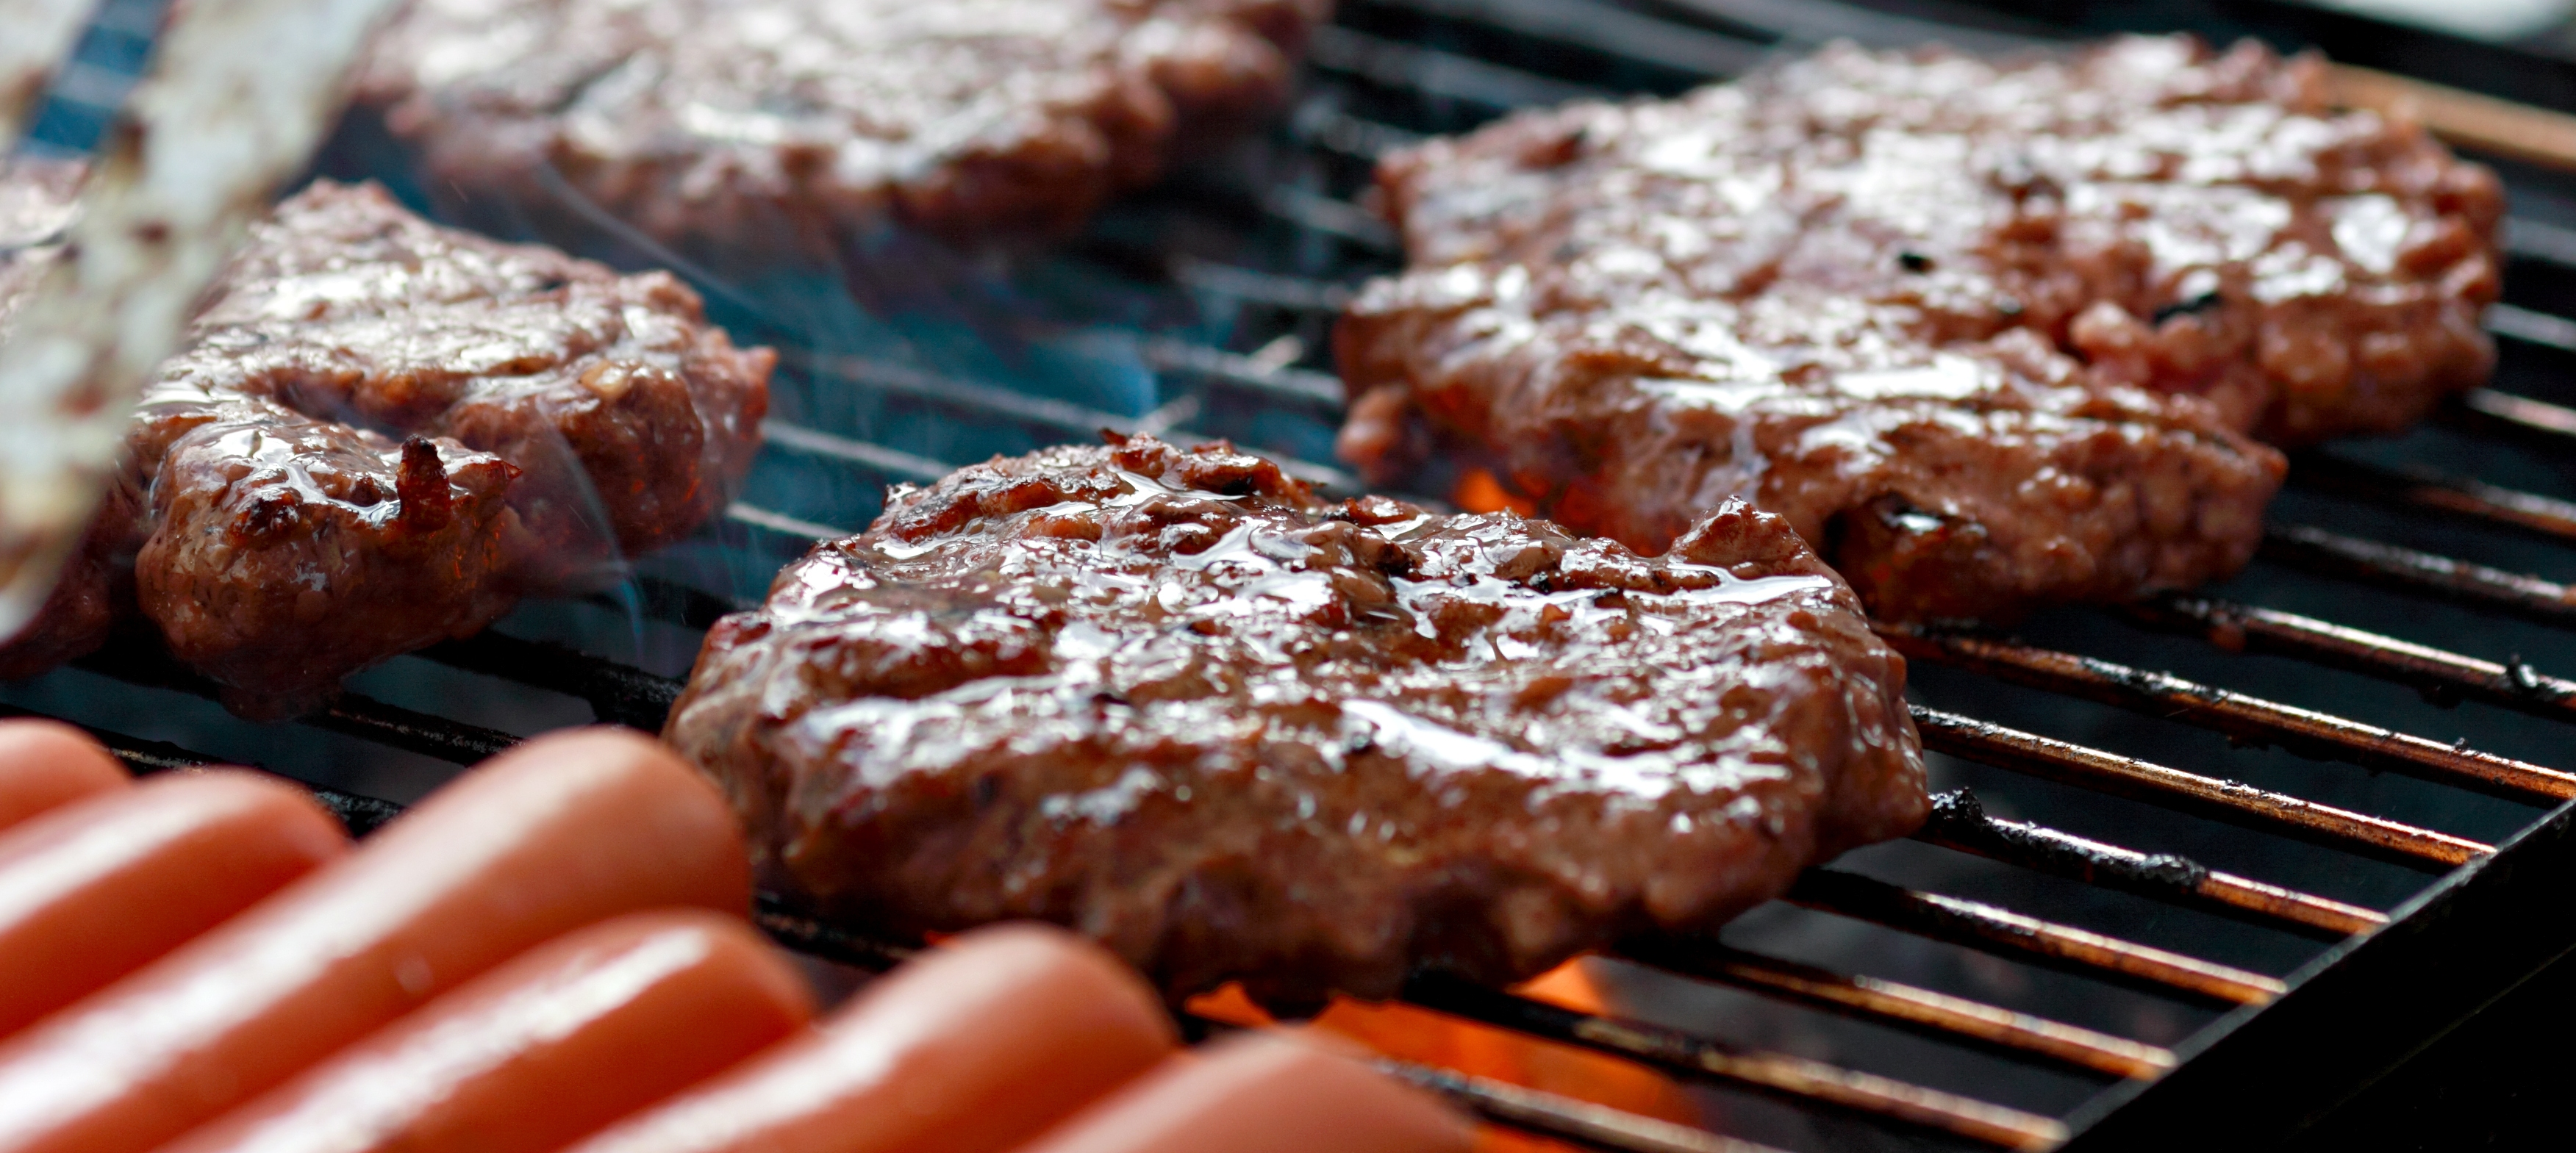 bigstock-Grilling-burgers-and-hot-dogs-1